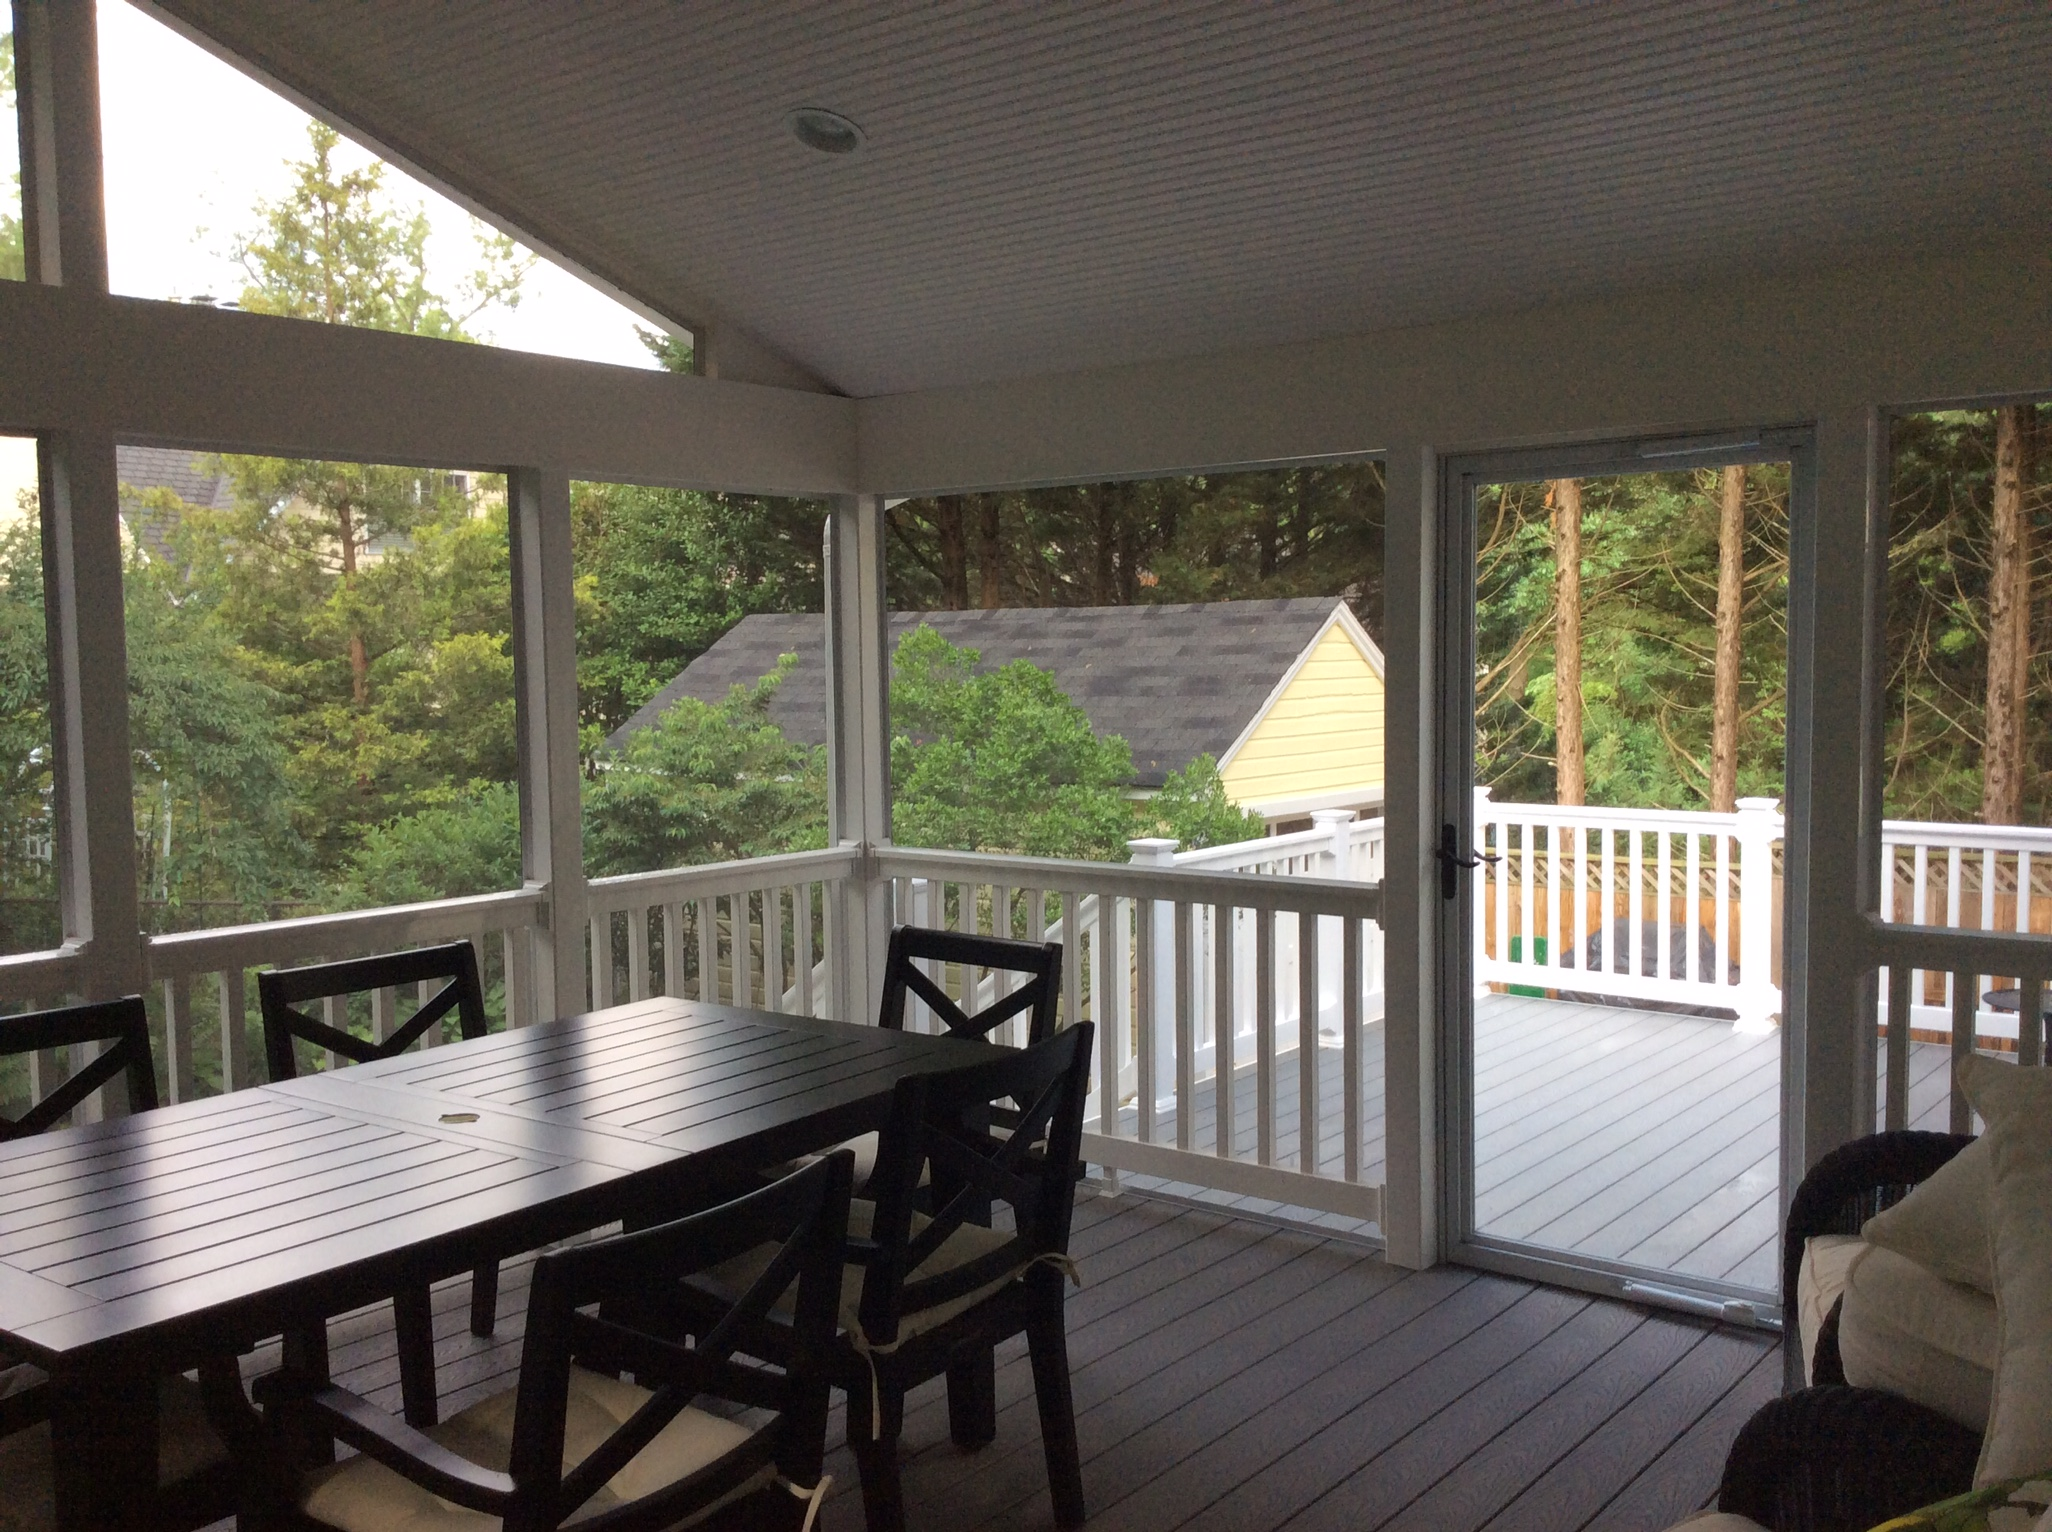 bethesda md deck and screened porch combinations - Outdoor Screened Porches